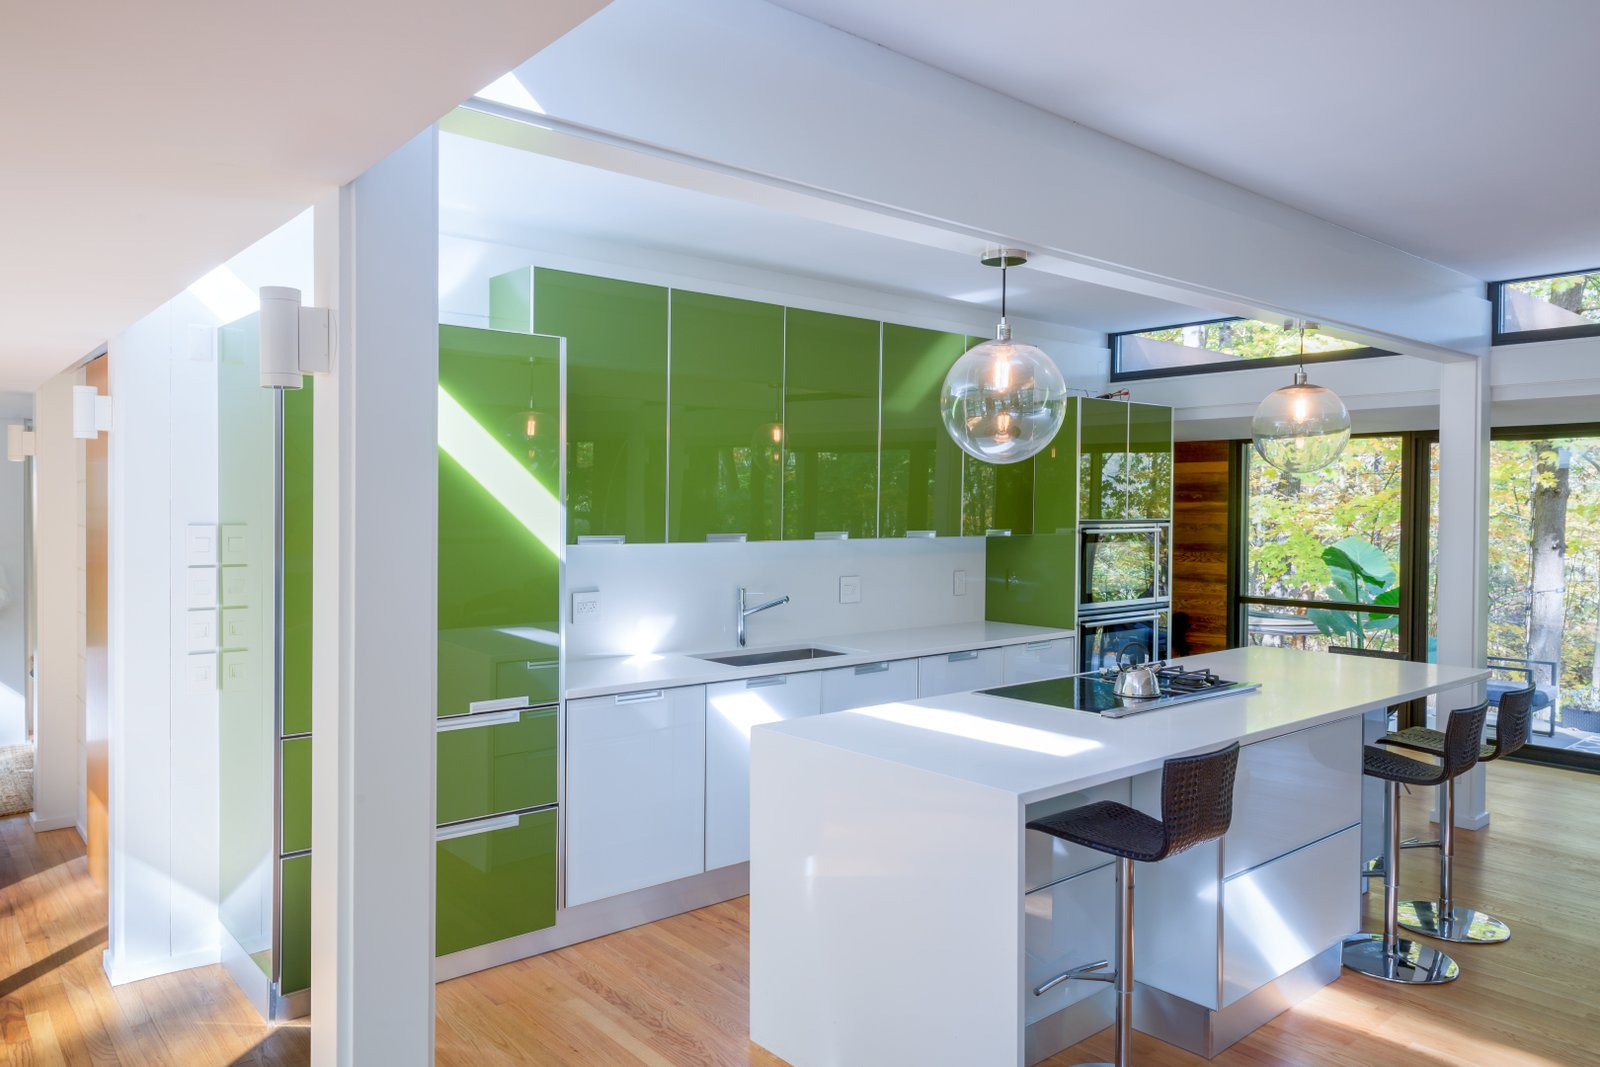 Treehaus kitchen with white and green cabinetry